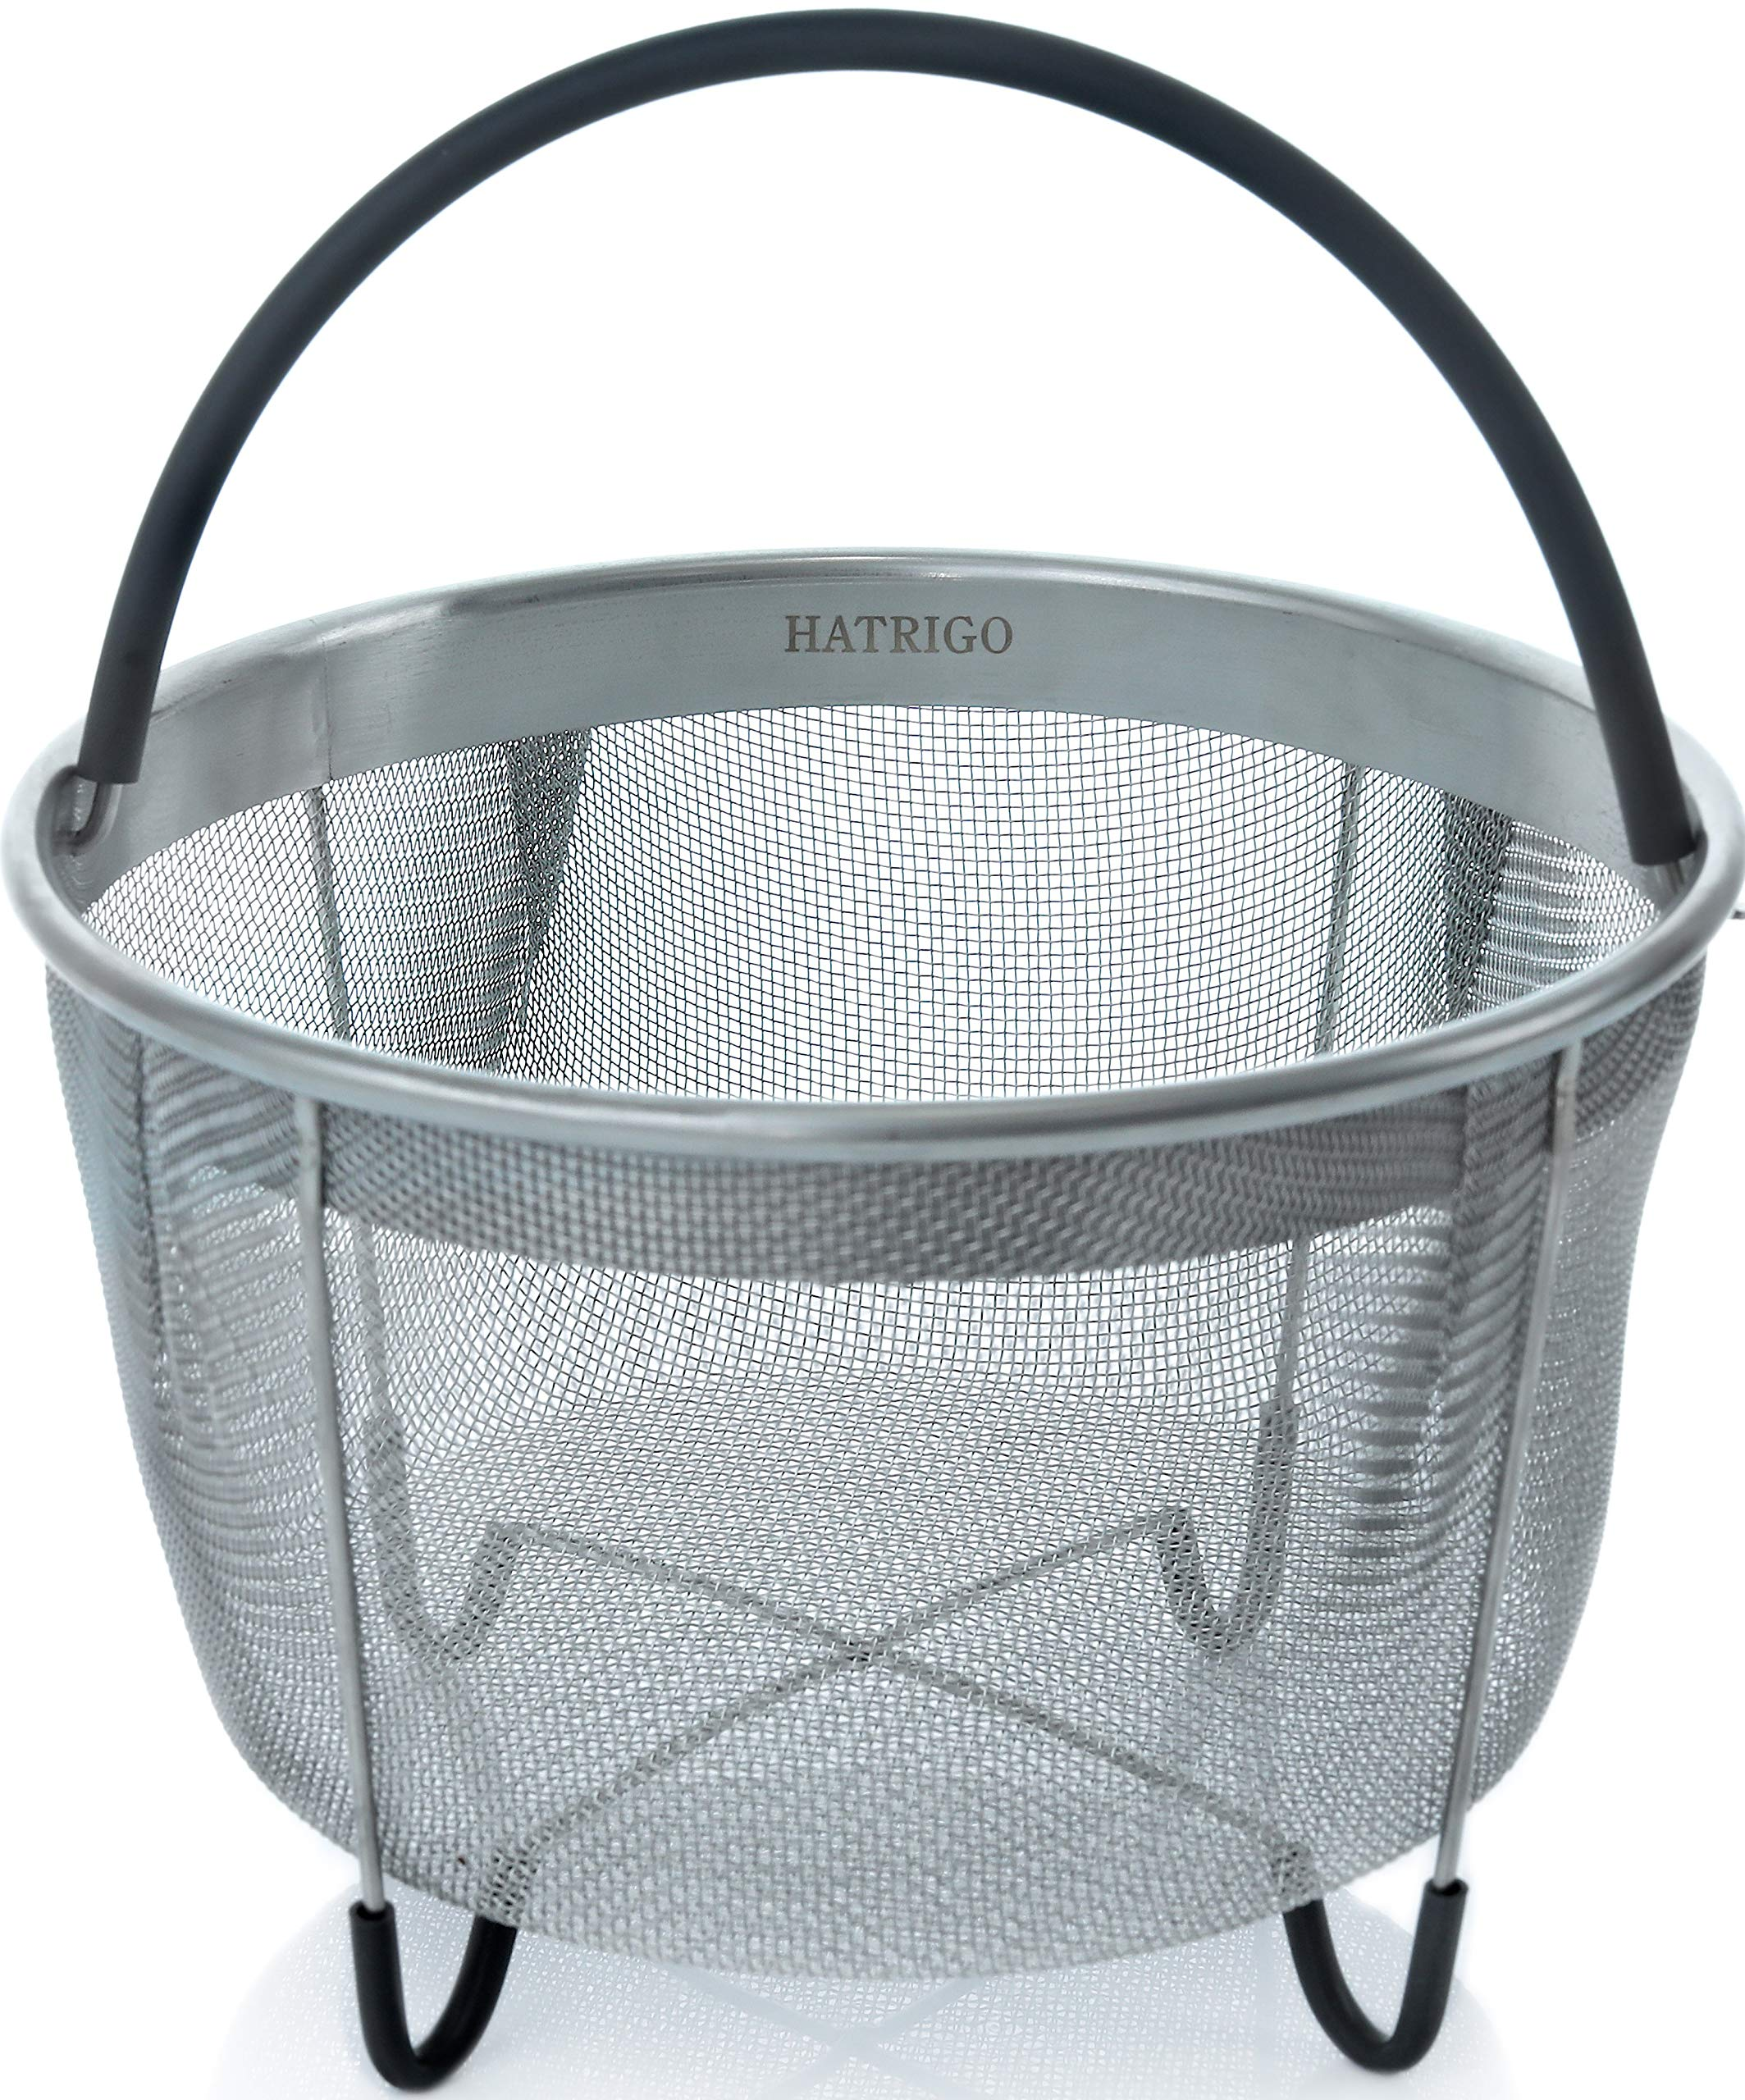 Hatrigo Steamer Basket for Pressure Cooker Accessories 6qt [3qt 8qt avail] Compatible with Instant Pot Accessories Ninja Foodi Other Multi Cookers, Strainer Insert with Silicone Handle, IP 6 Quart by Hatrigo